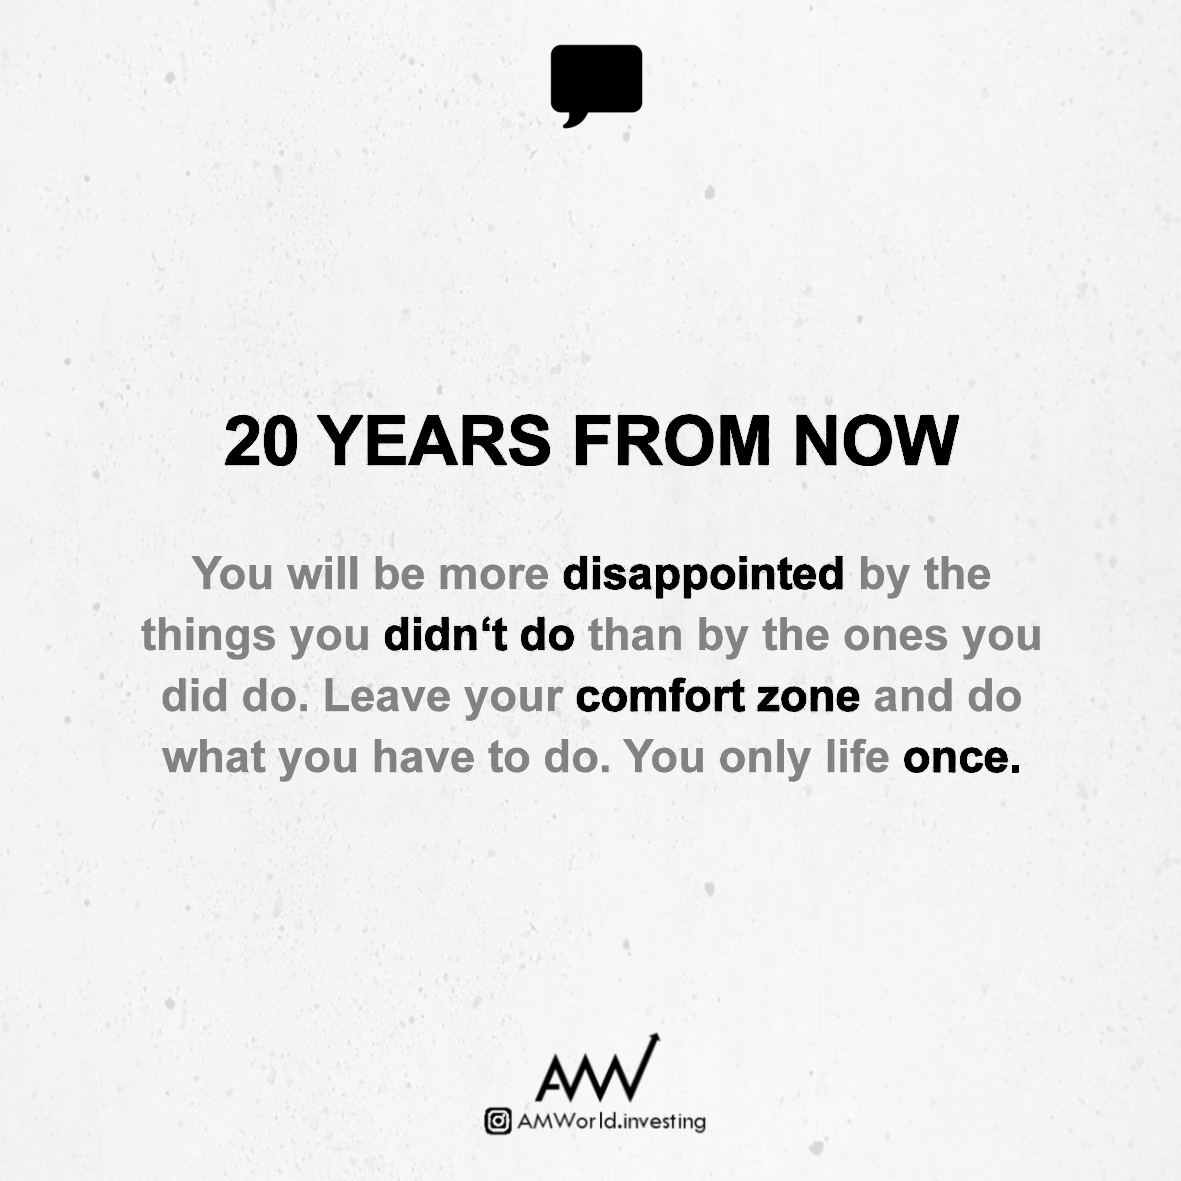 We should keep in mind that there's no principle that says we always succeed at whatever we attempt. There is a potential loss when ....   Check full post in IG  https://www.instagram.com/amworld.investing/…  #leavethecomfortzone #changeyourmind #entrepreneurfacts #entrepreneurgoals pic.twitter.com/YpGKOehFBD